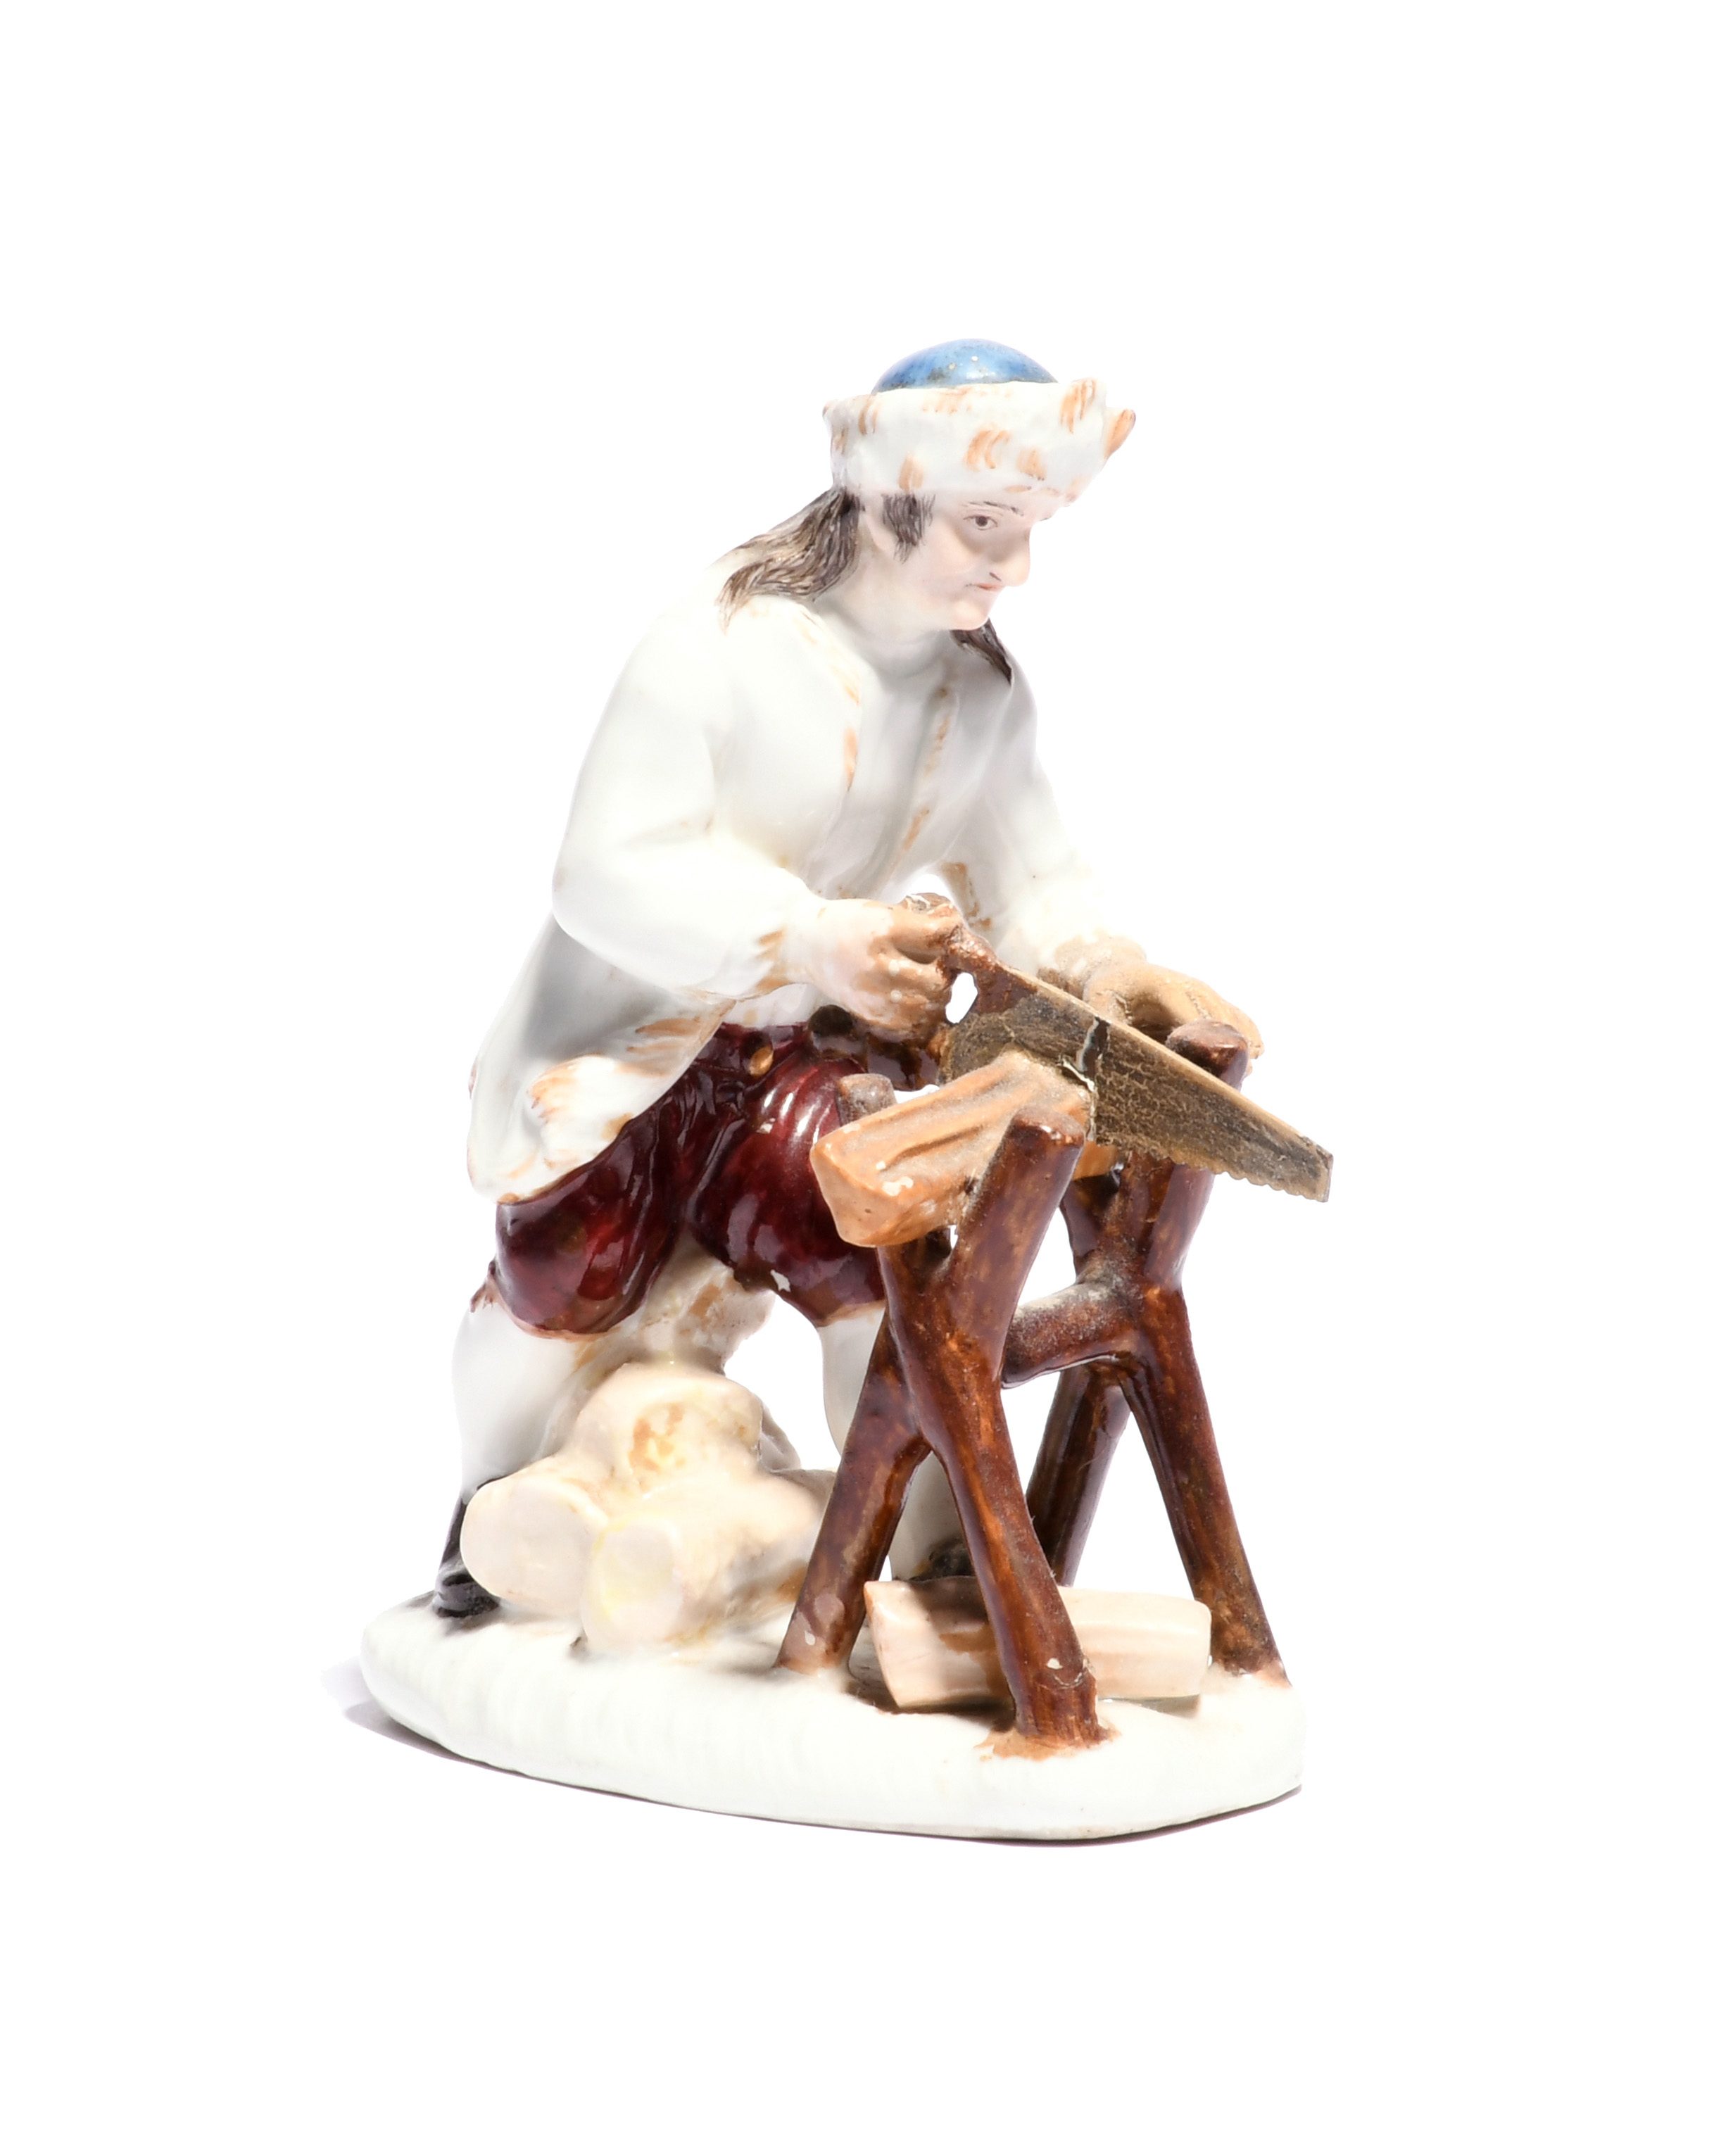 A Meissen figure of a woodcutter mid 18th century, modelled by J J Kändler after engravings by